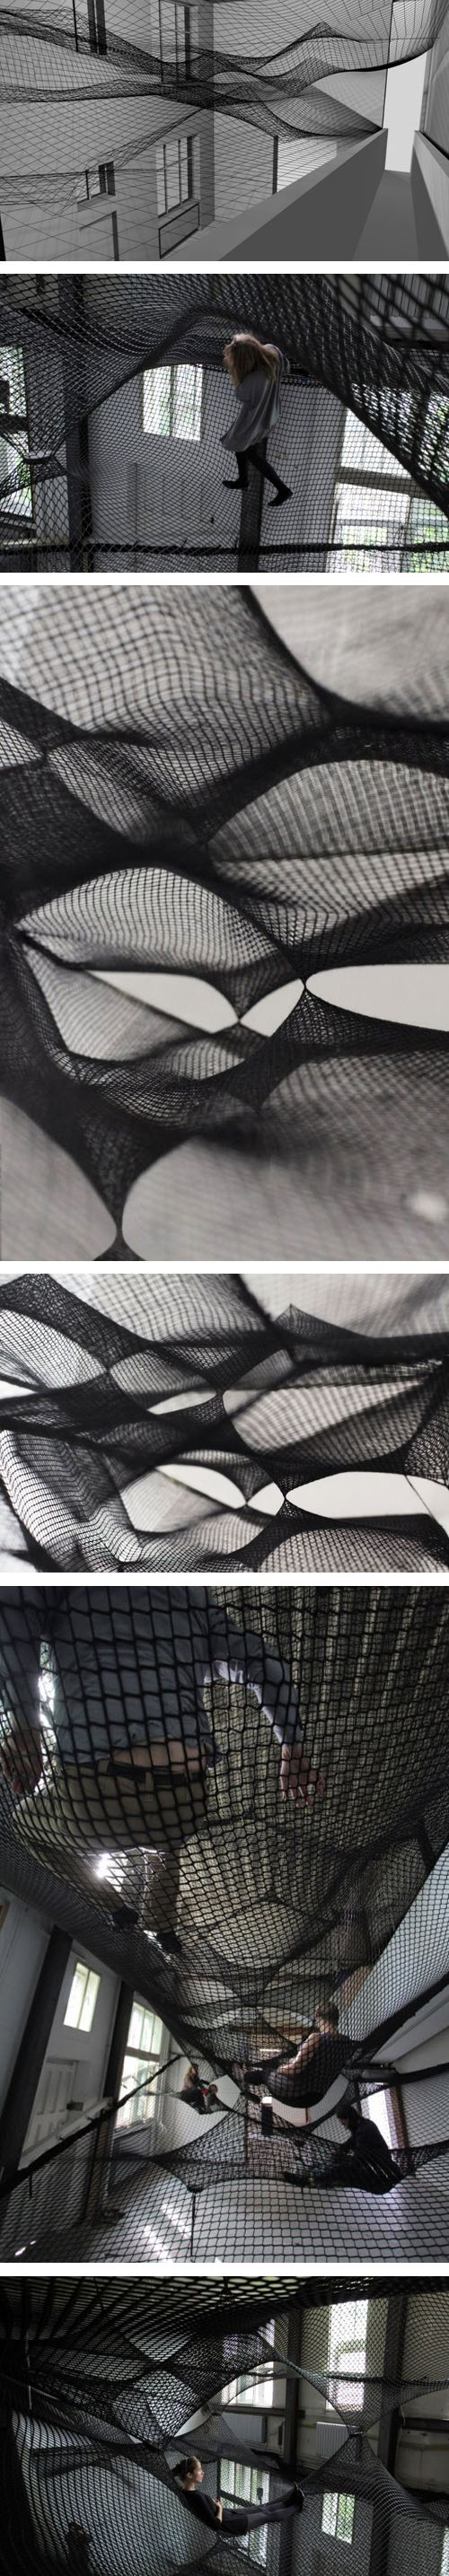 From 2008, Numen / For Use focuses on objects and concepts set without a specific use, resulting in hybrid and experimental work, as the series Numen / Light and tape facilities Numen / Tape.